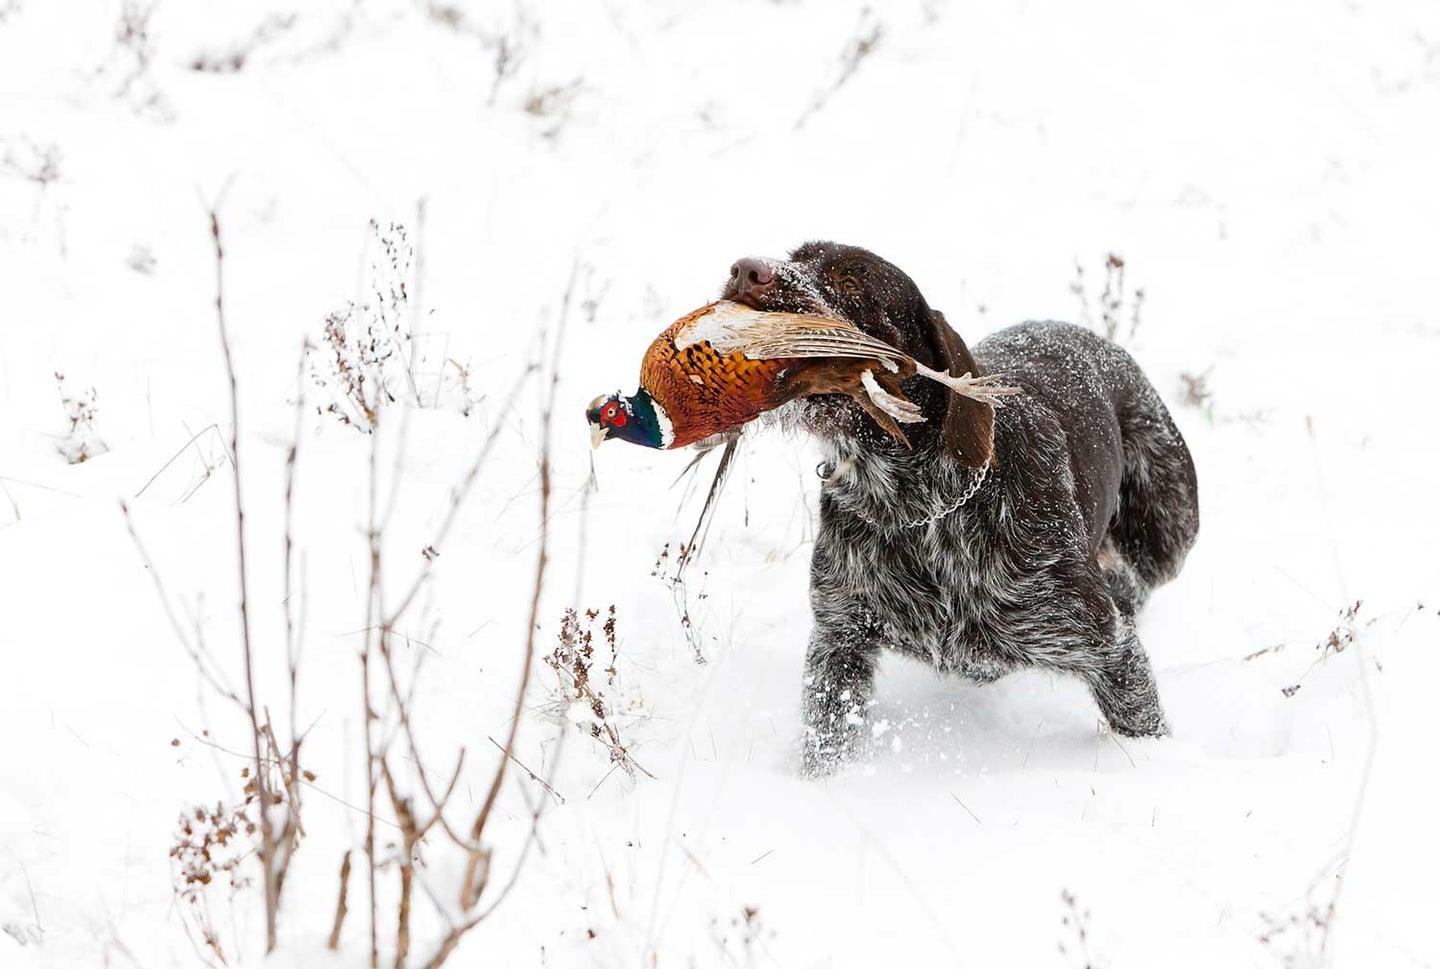 Hunting dog retrieving a late-season pheasant in the snow.